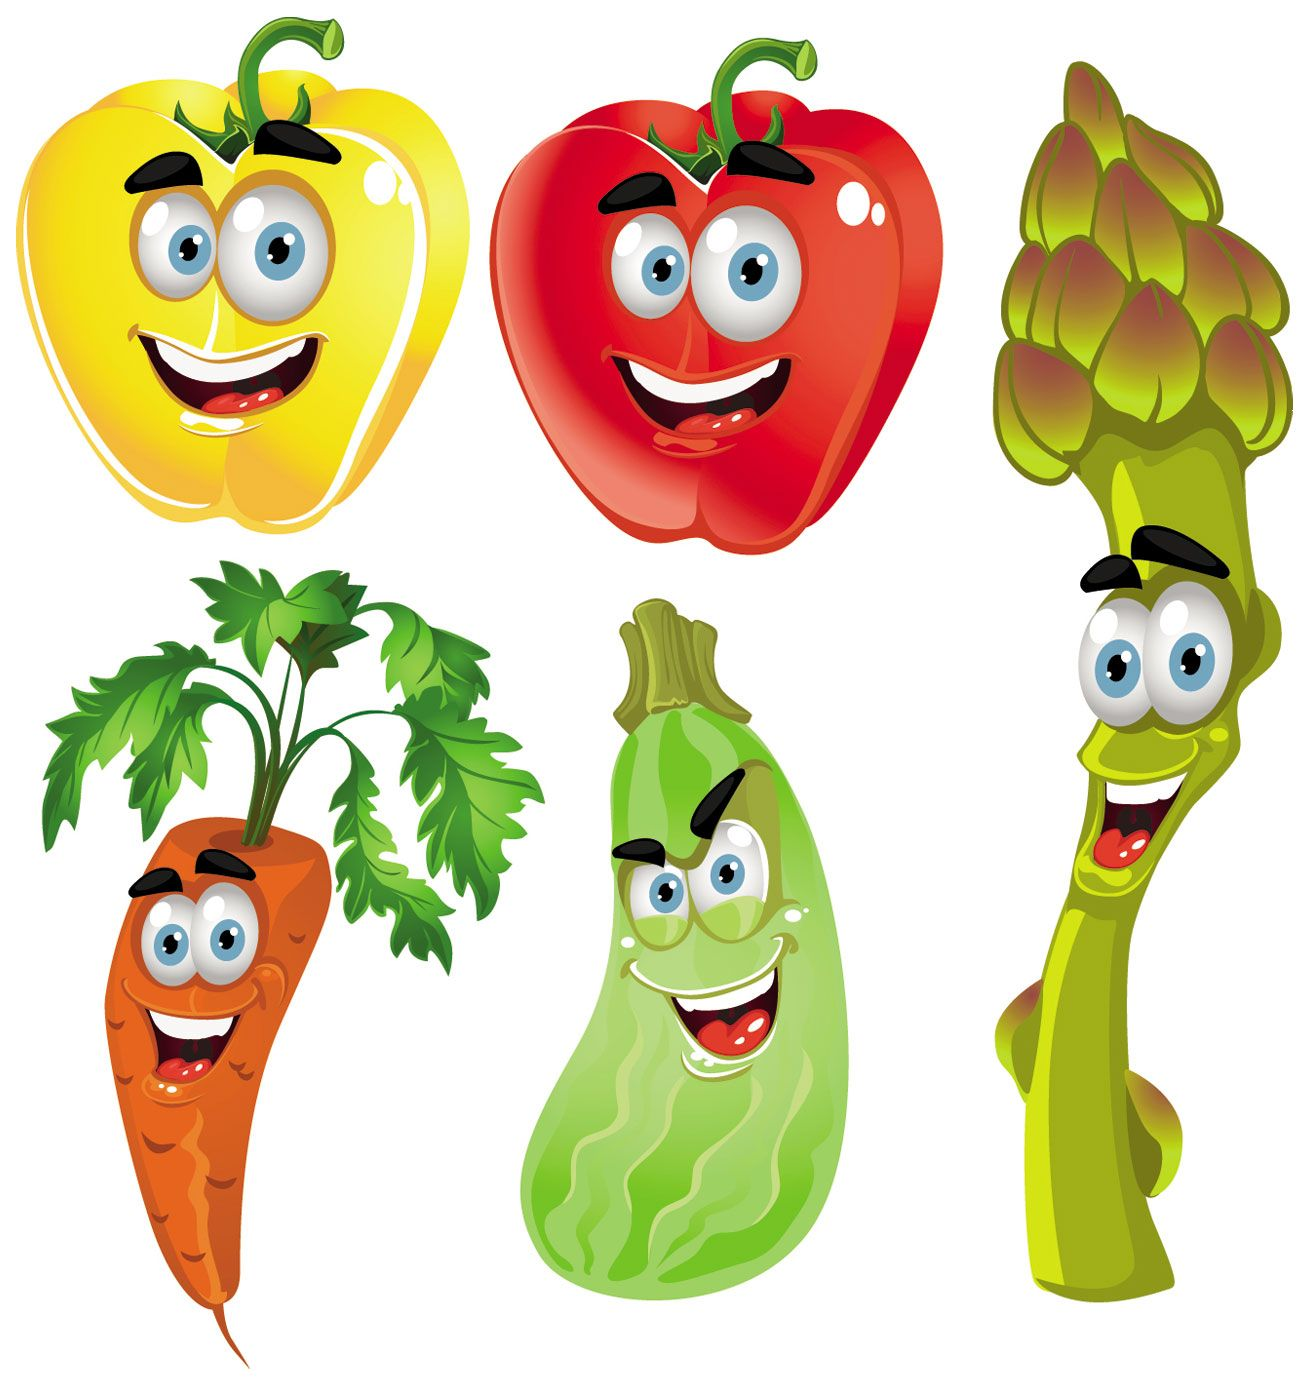 Fruits And Vegetables Clipart - Cliparts-Fruits And Vegetables Clipart - Cliparts.-7